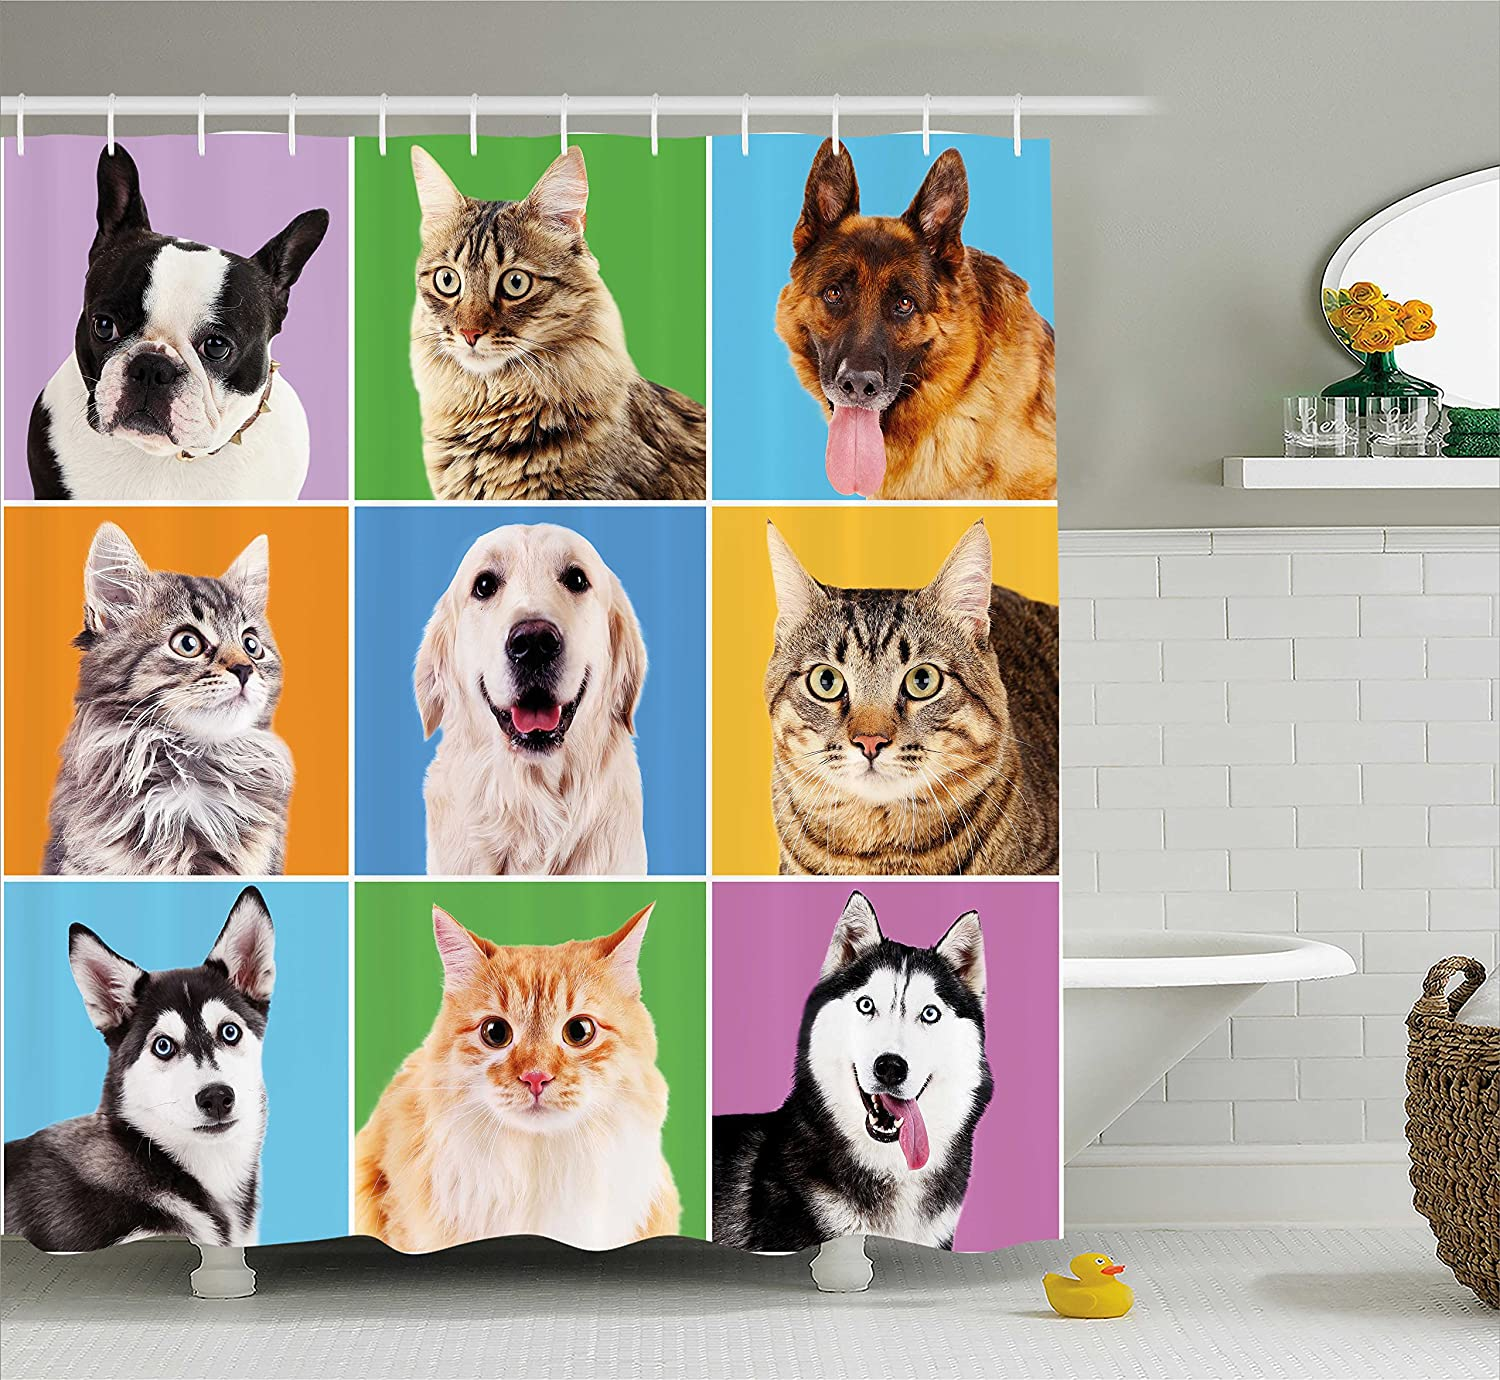 Ambesonne Animal Shower Curtain By Cute Various Dog And Cat Portraits Puppies Kittens Pet Company Funny Humor Design Fabric Bathroom Decor Set With Hooks